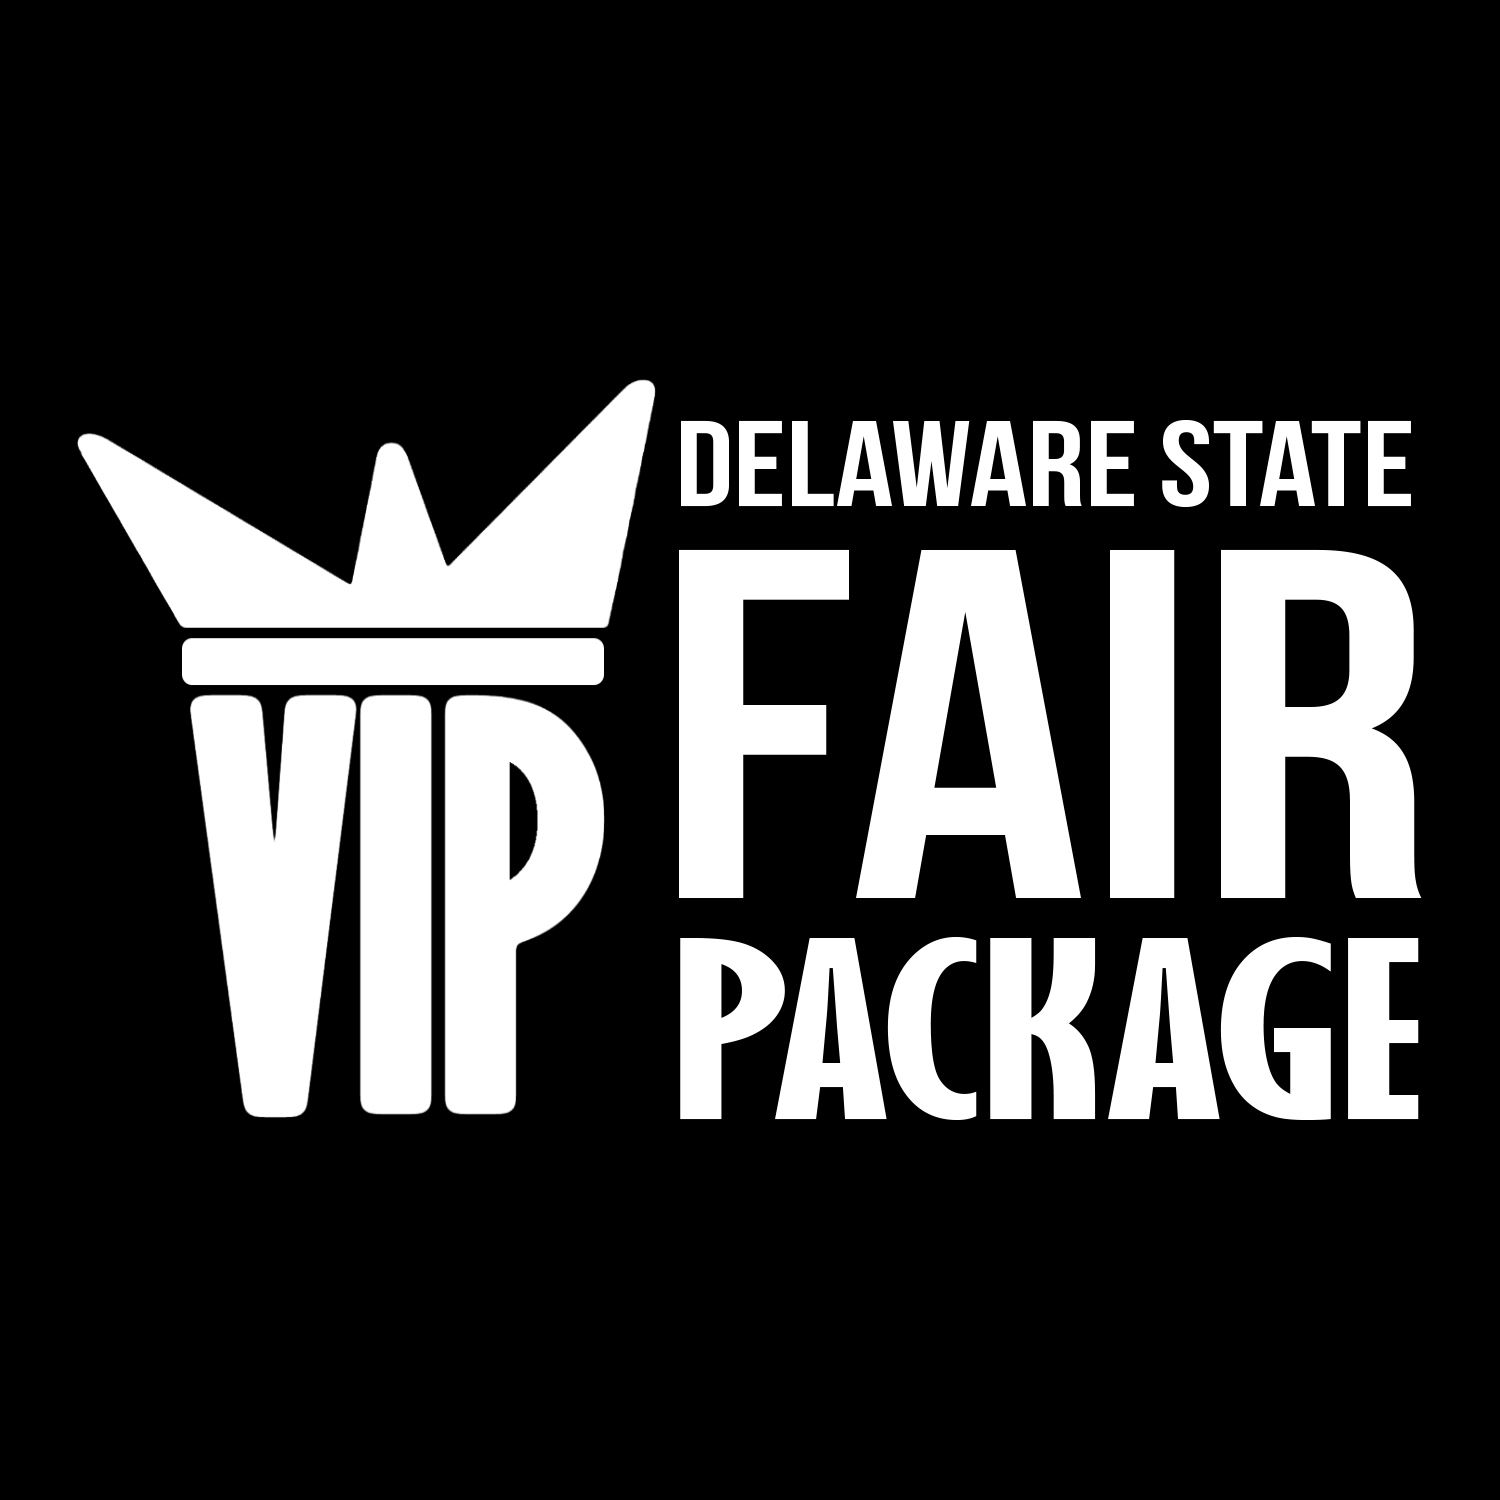 Dsf vip packages 2018 m4hsunfo